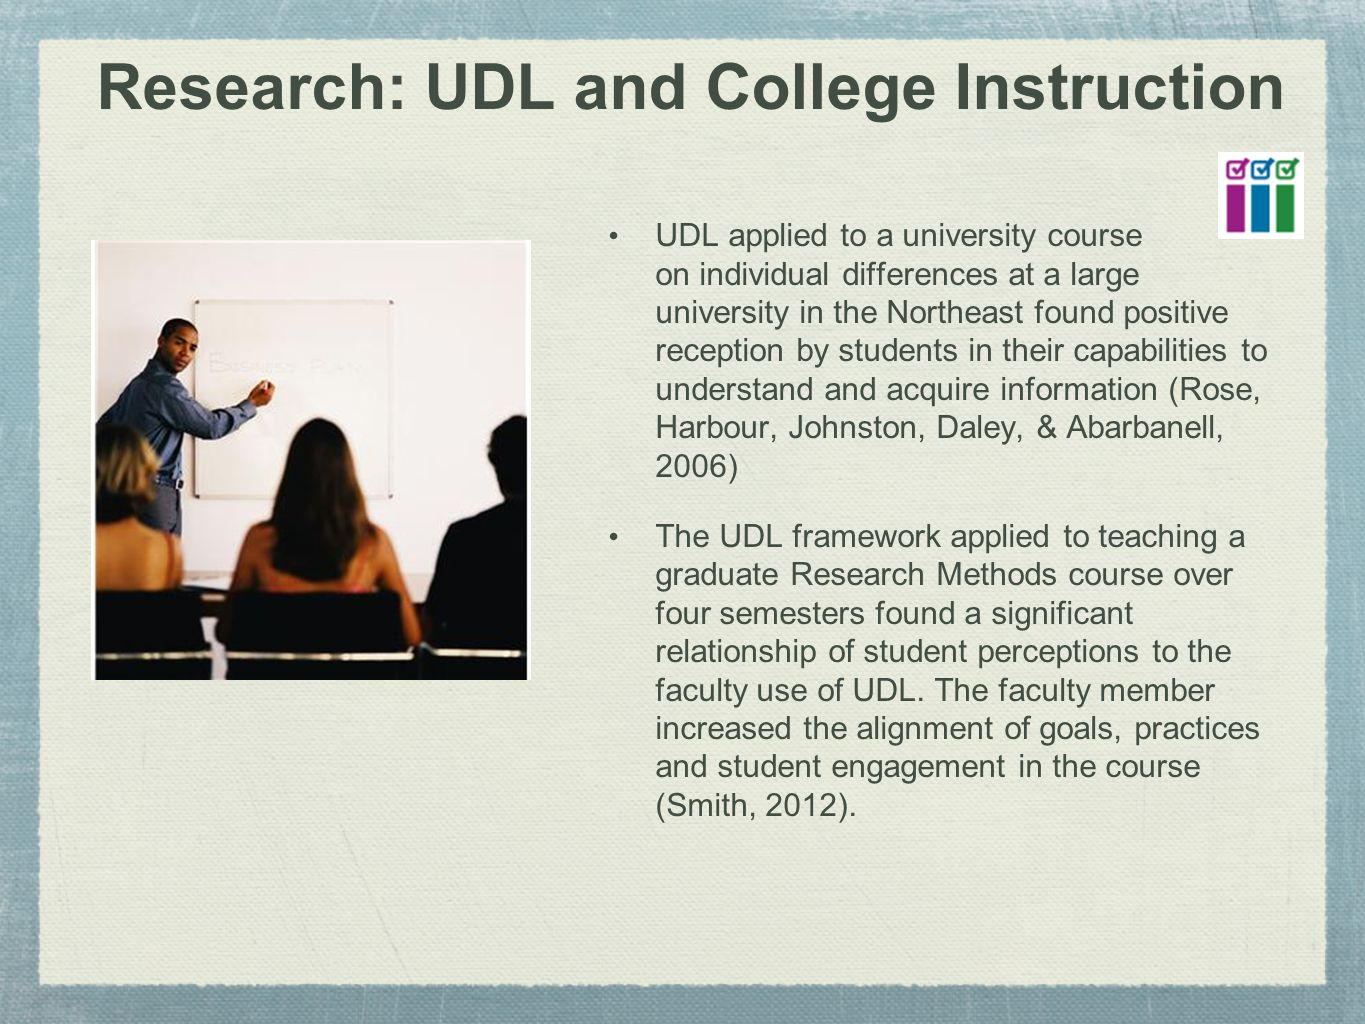 Research: UDL and College Instruction UDL applied to a university course on individual differences at a large university in the Northeast found positive reception by students in their capabilities to understand and acquire information (Rose, Harbour, Johnston, Daley, & Abarbanell, 2006) The UDL framework applied to teaching a graduate Research Methods course over four semesters found a significant relationship of student perceptions to the faculty use of UDL.